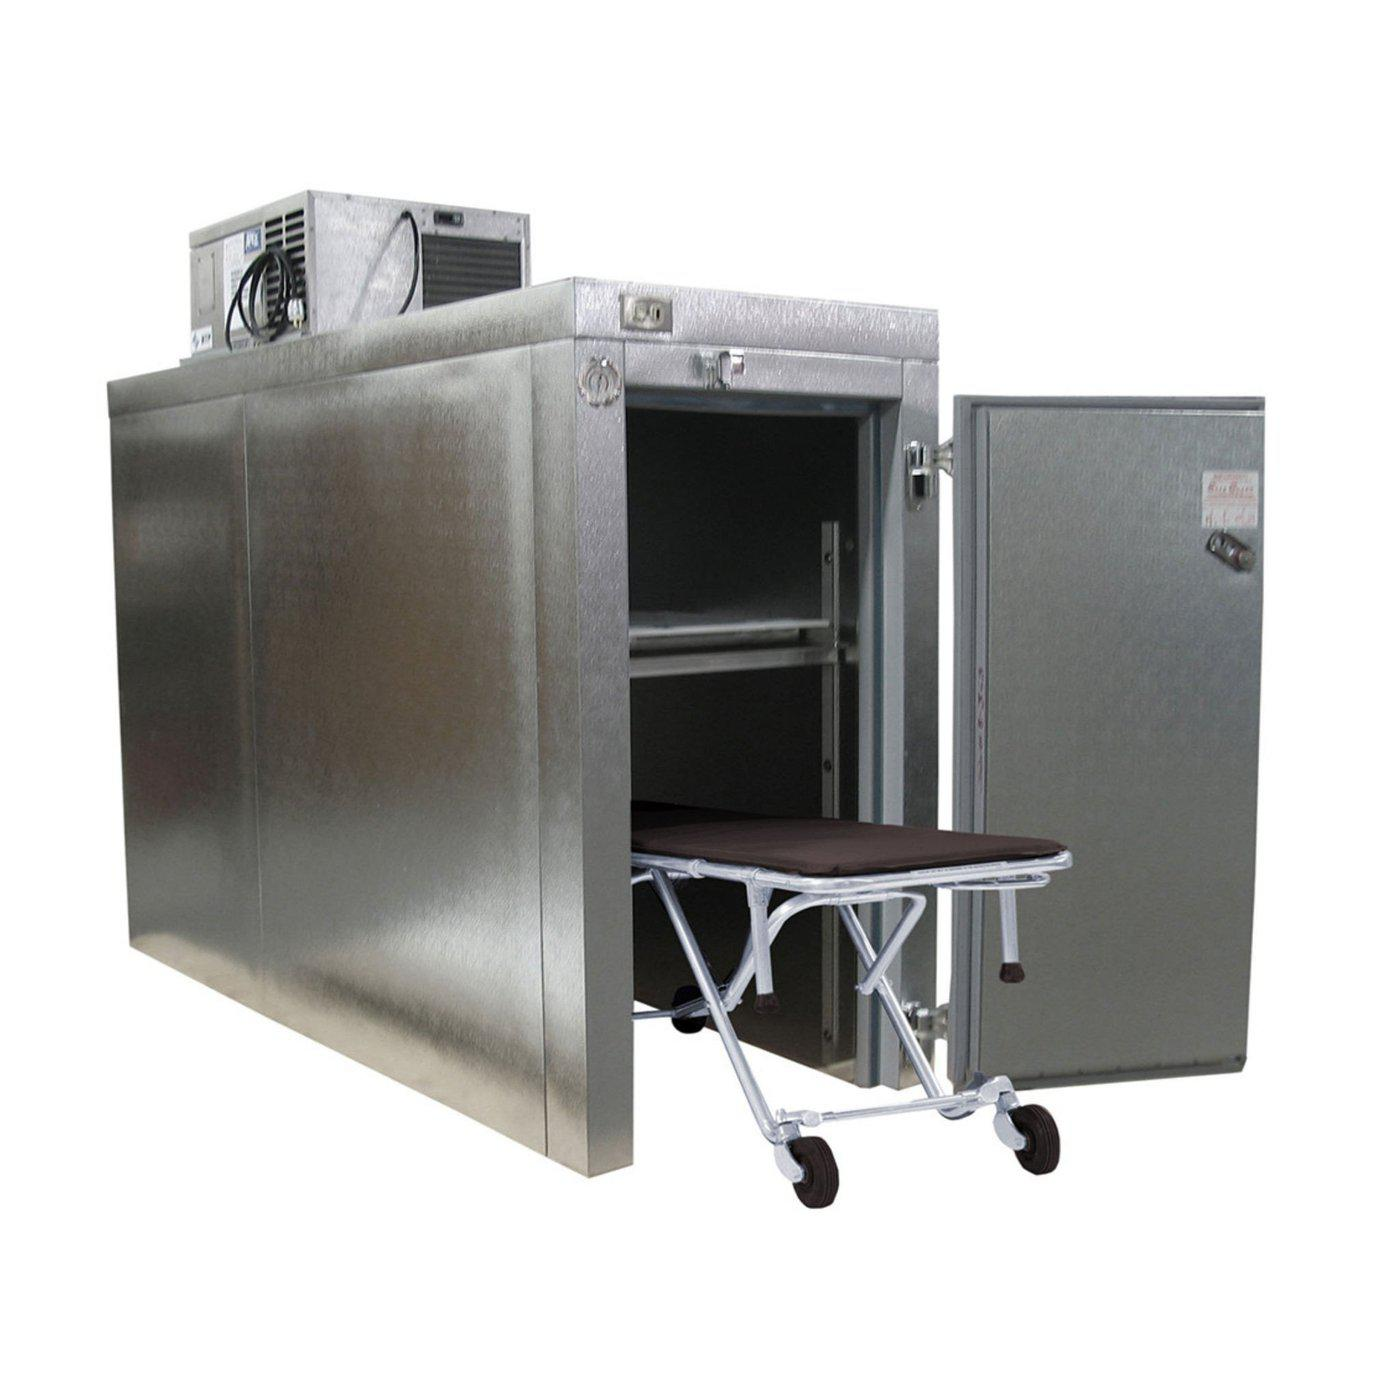 Roll-in Two Body Refrigerator-Refrigeration-Mortech Manufacturing Company Inc. Quality Stainless Steel Autopsy, Morgue, Funeral Home, Necropsy, Veterinary / Anatomy, Dissection Equipment and Accessories